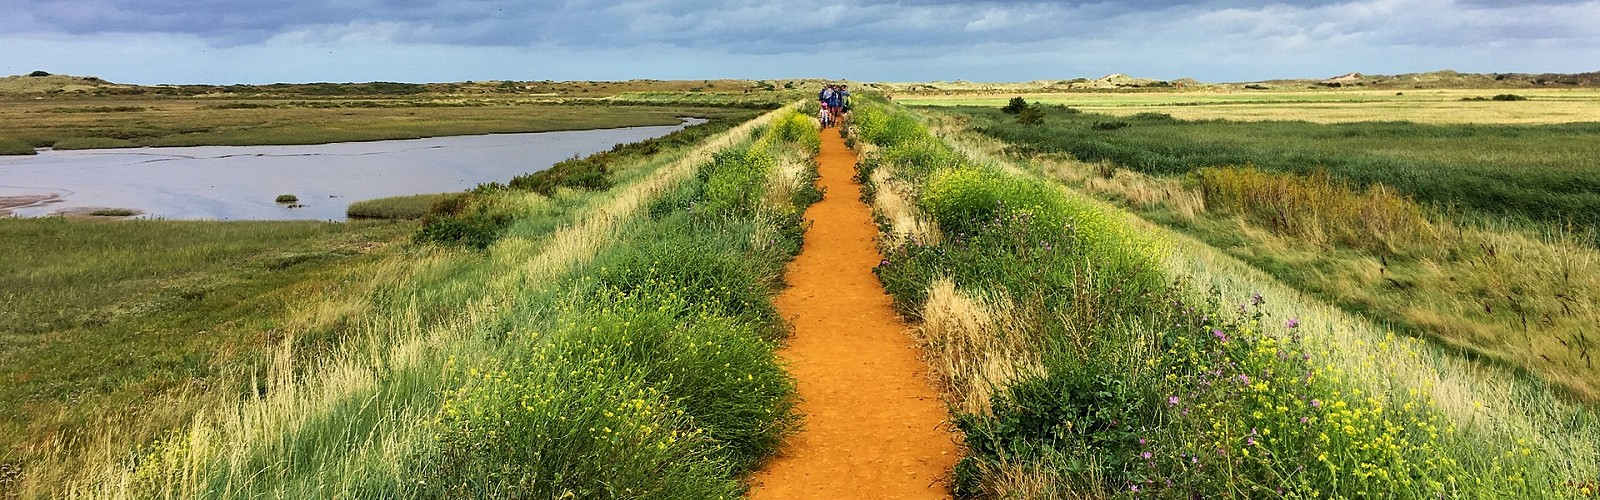 coastal path in the Norfolk fens (image: pexels on pixabay)